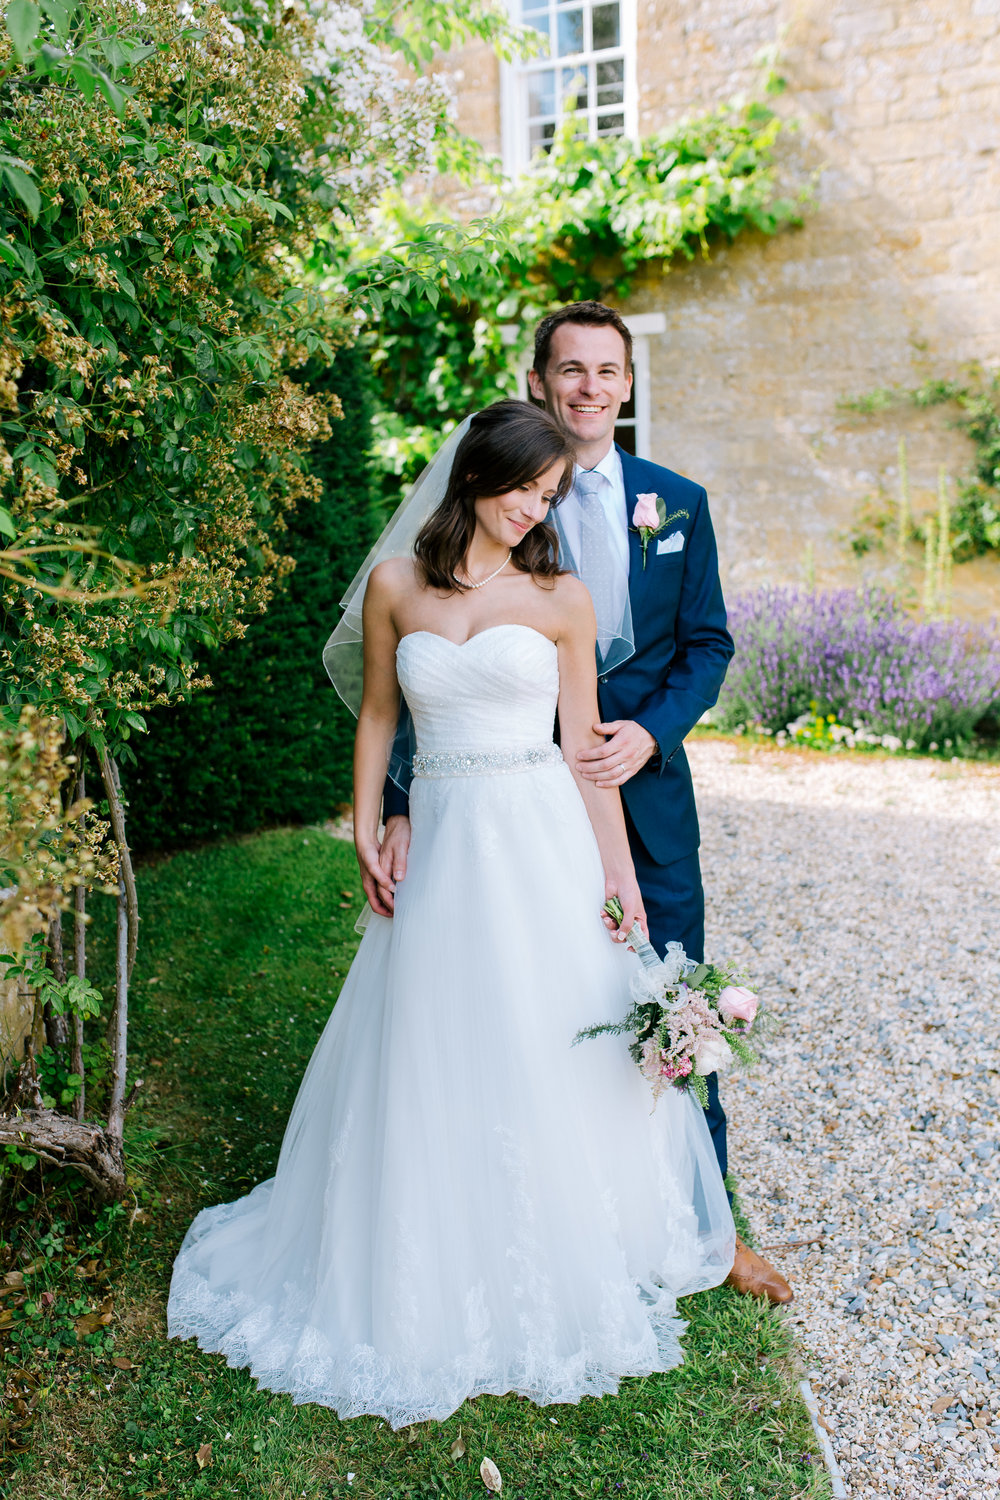 Somerset Wedding Photographer Compton Pauncefoot Wedding Laura & Chris 292.jpg